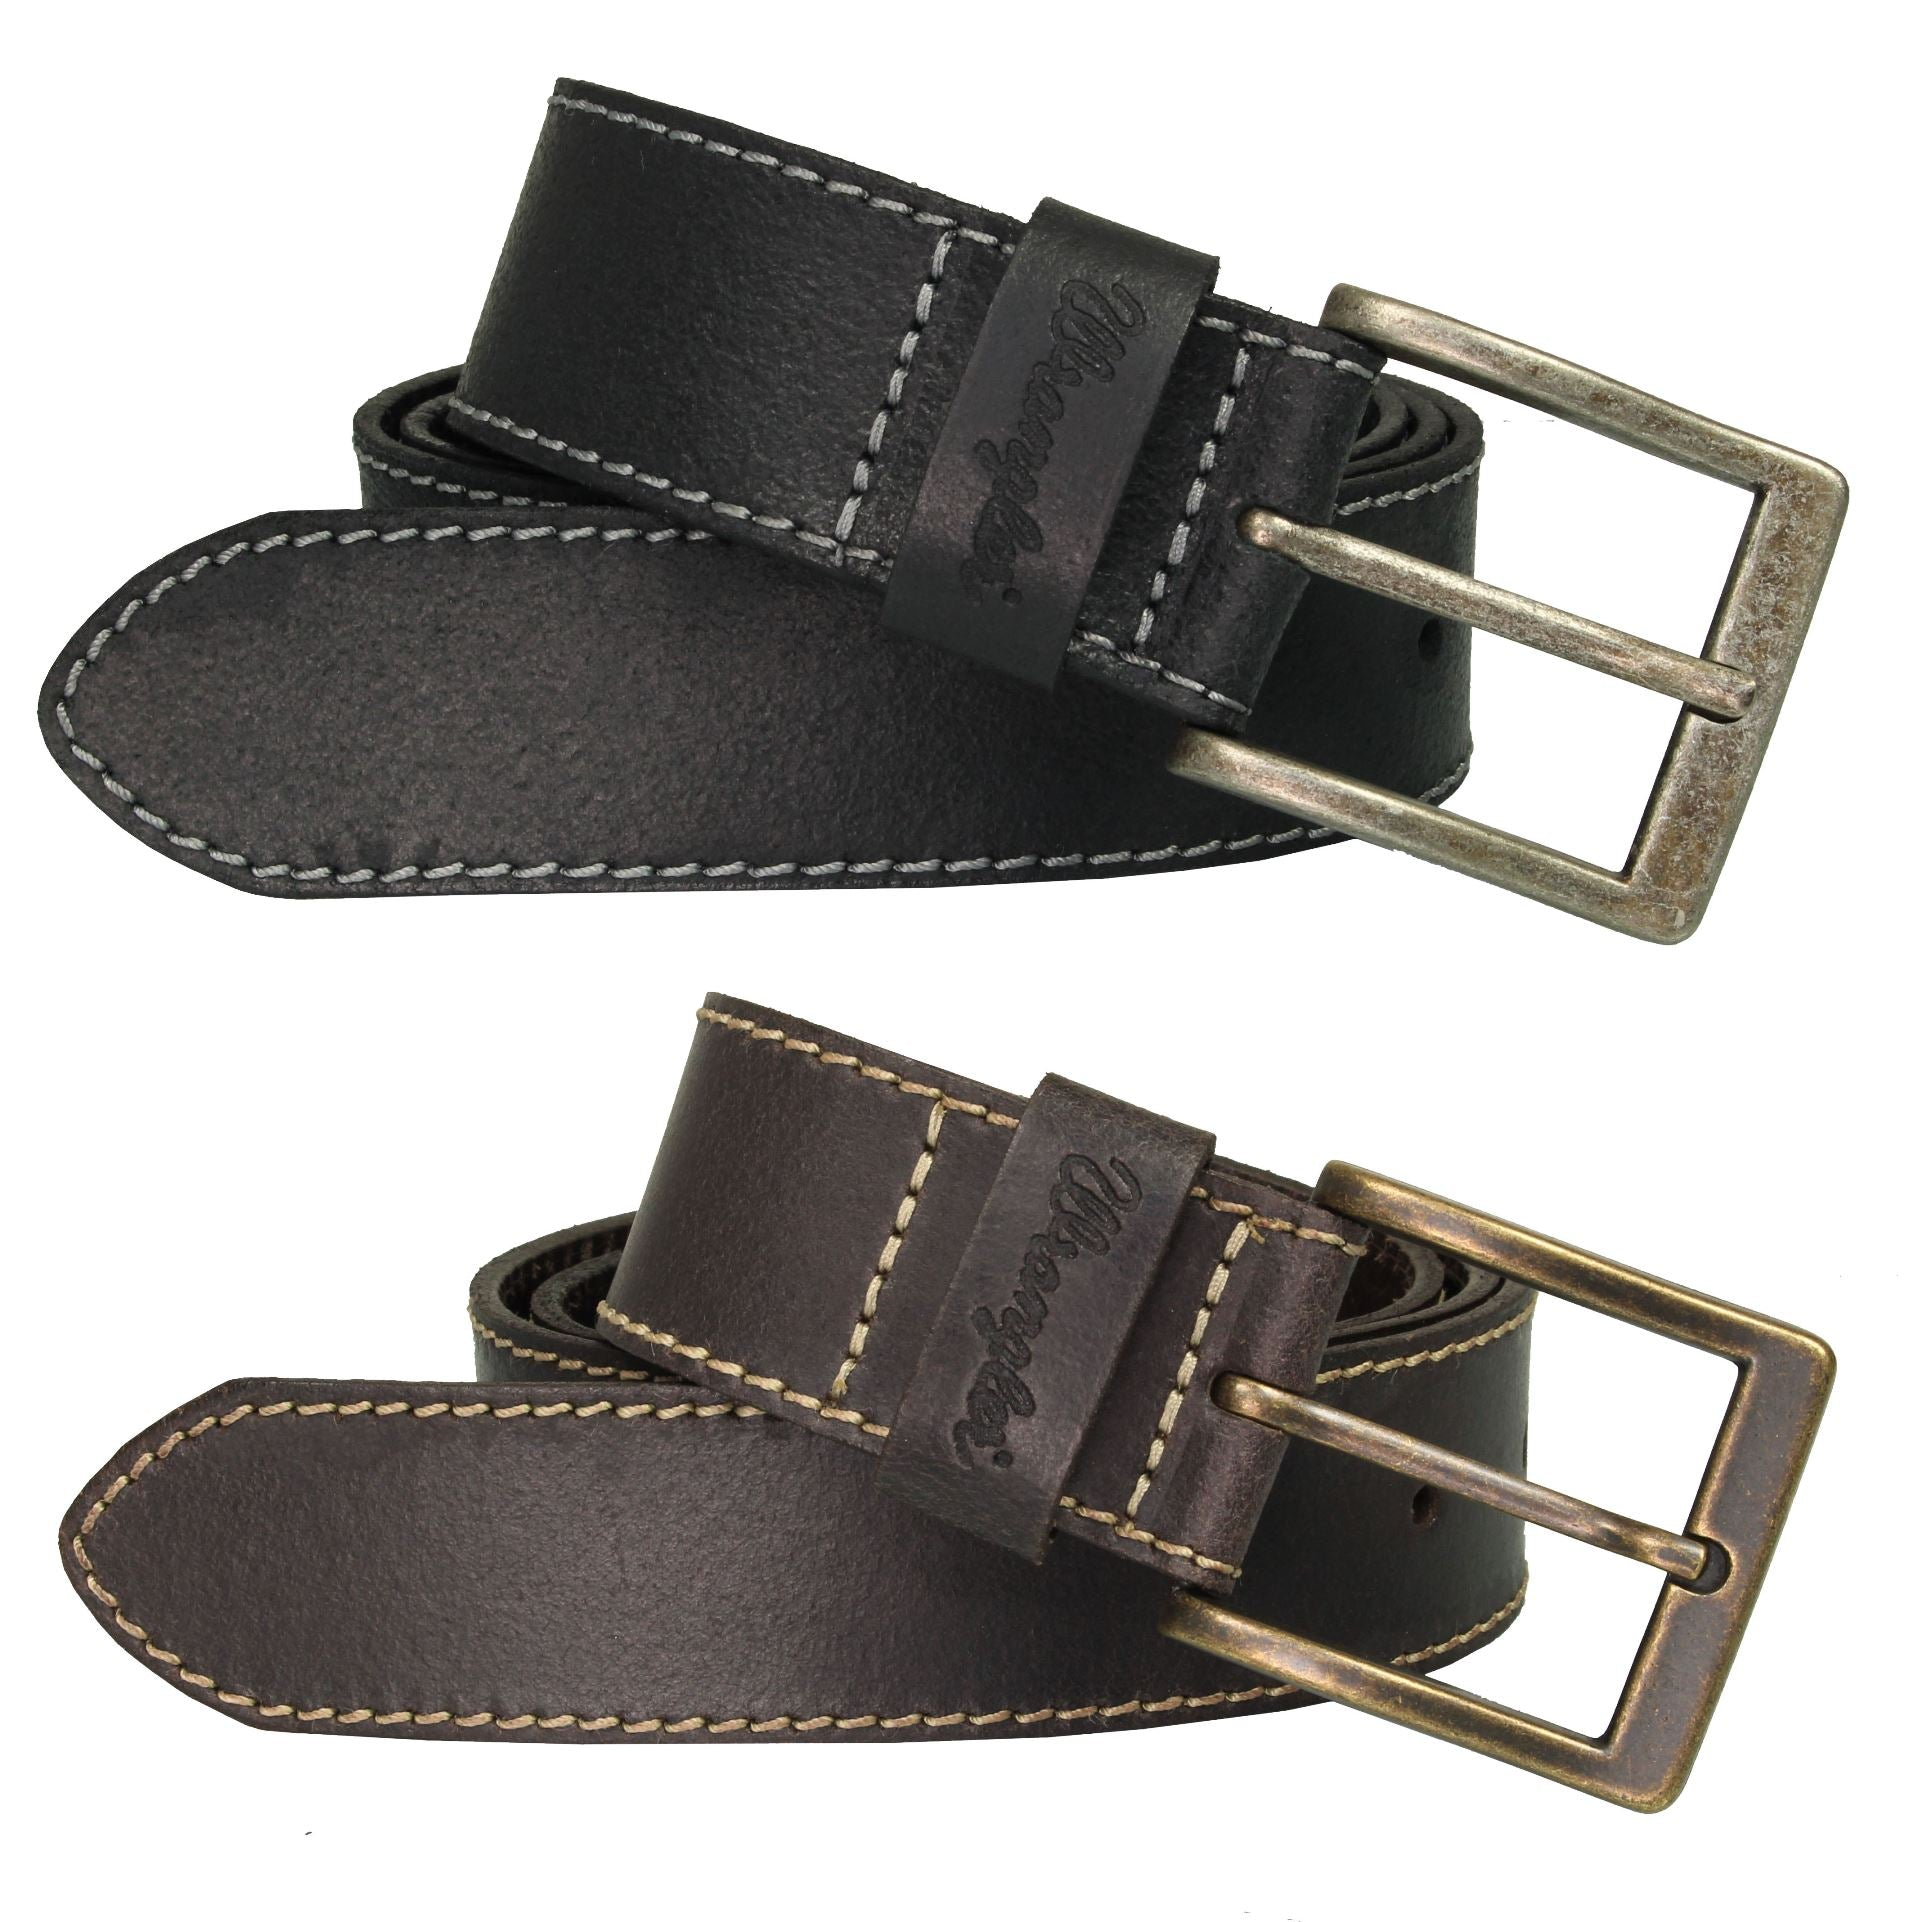 Wrangler Mens 'Stitched' Leather Belt-Main Image